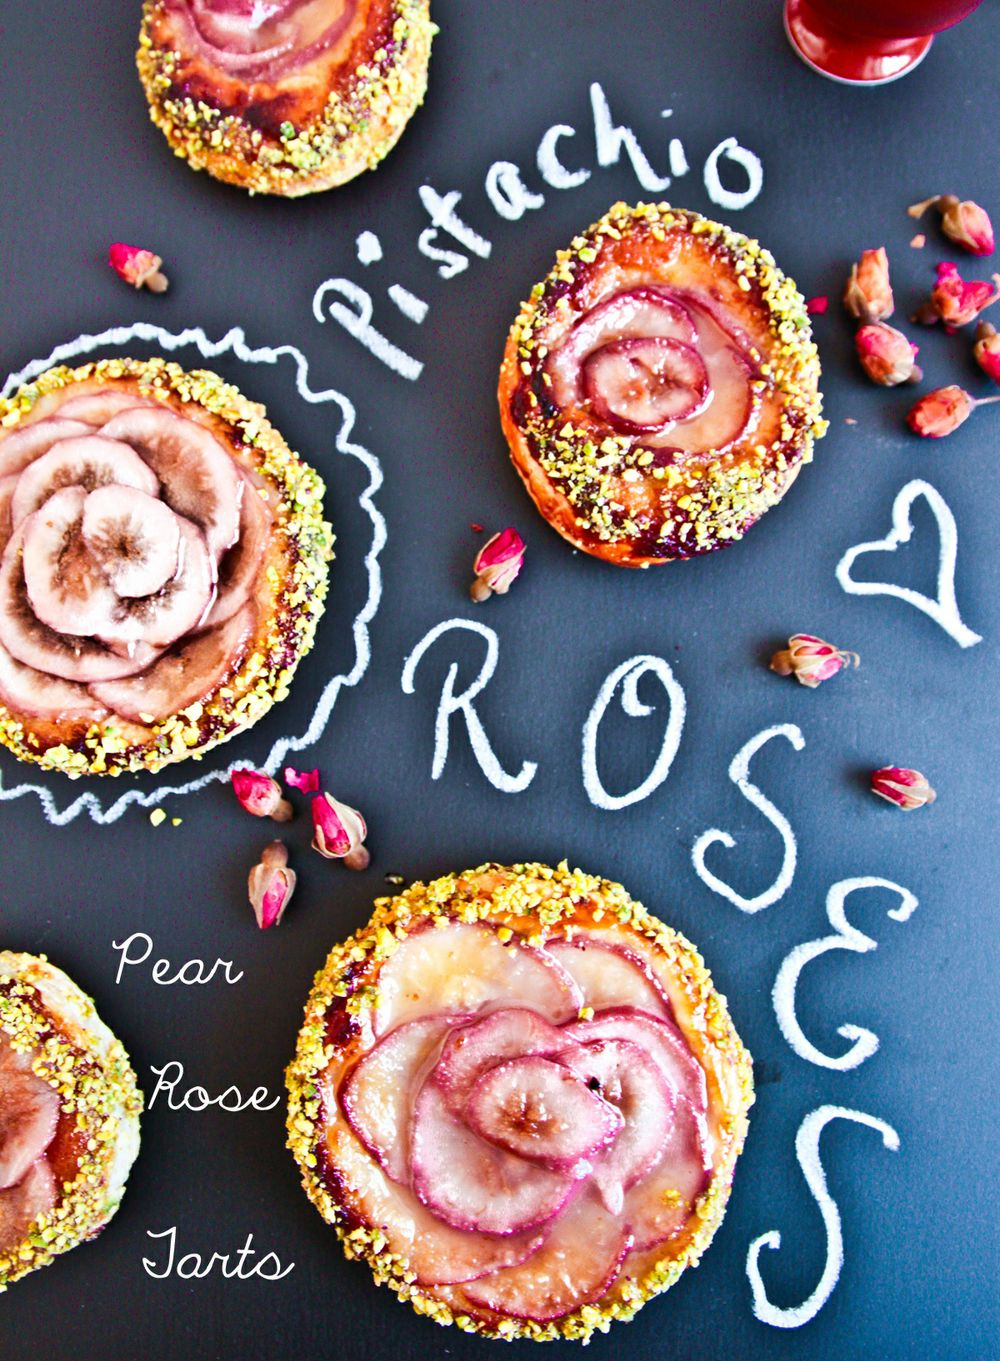 m2-pear-rose-tart-1-3